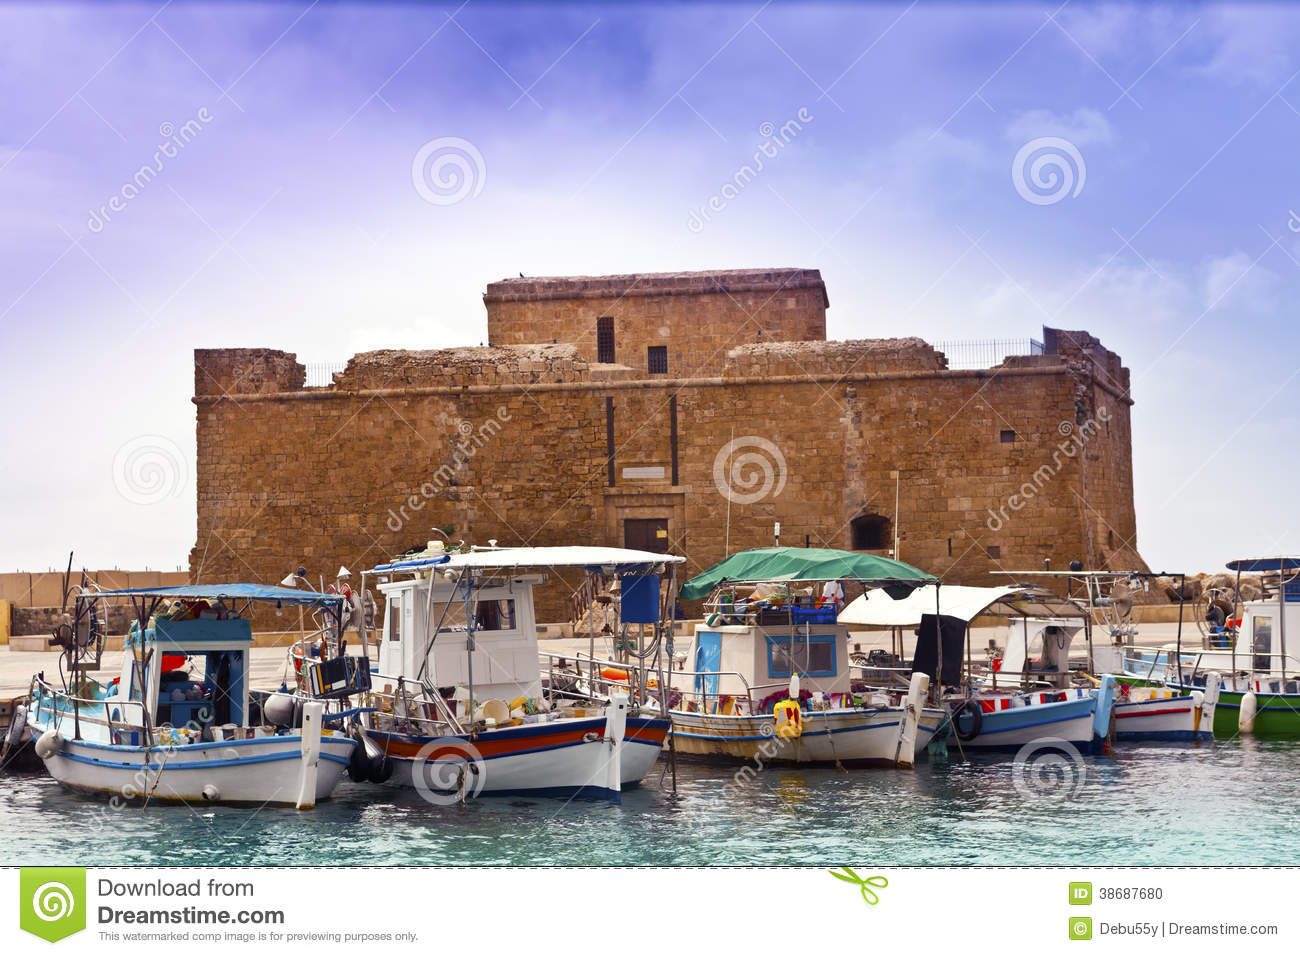 Baju kahwin muslimah www imgarcade com online image arcade - Historic Castle In Paphos Cyprus Stock Photo Image Wallpaper Gallery Castle Clipart Clipart